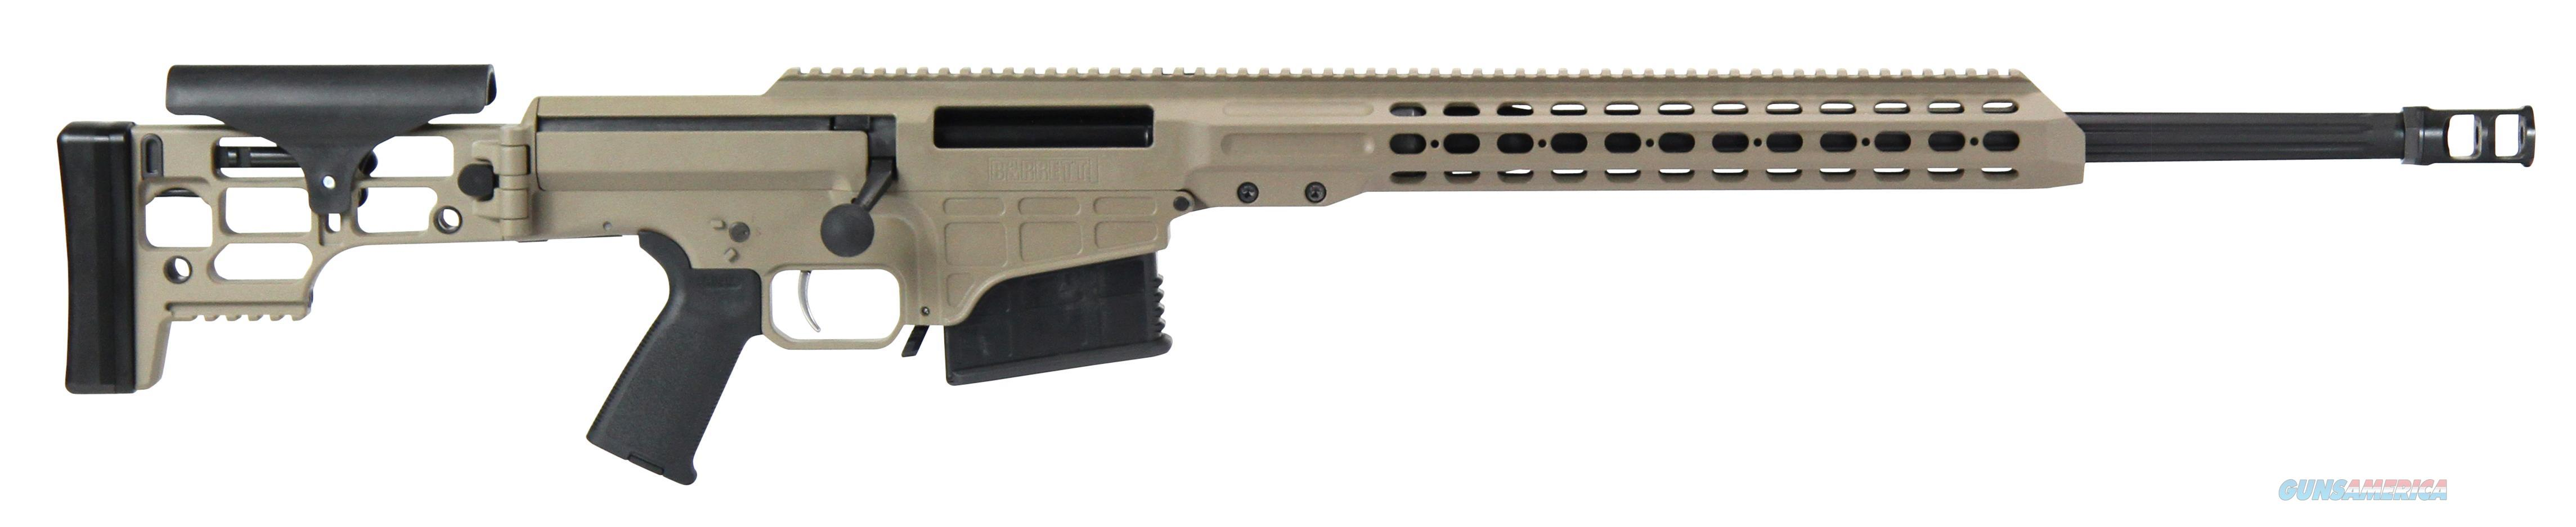 "Barrett 15470 Mrad Bolt 7Mm Remington Magnum 24"" 10+1 Folding Flat Dark Earth Stk Fde/Blk 15470  Guns > Rifles > Barrett Rifles"